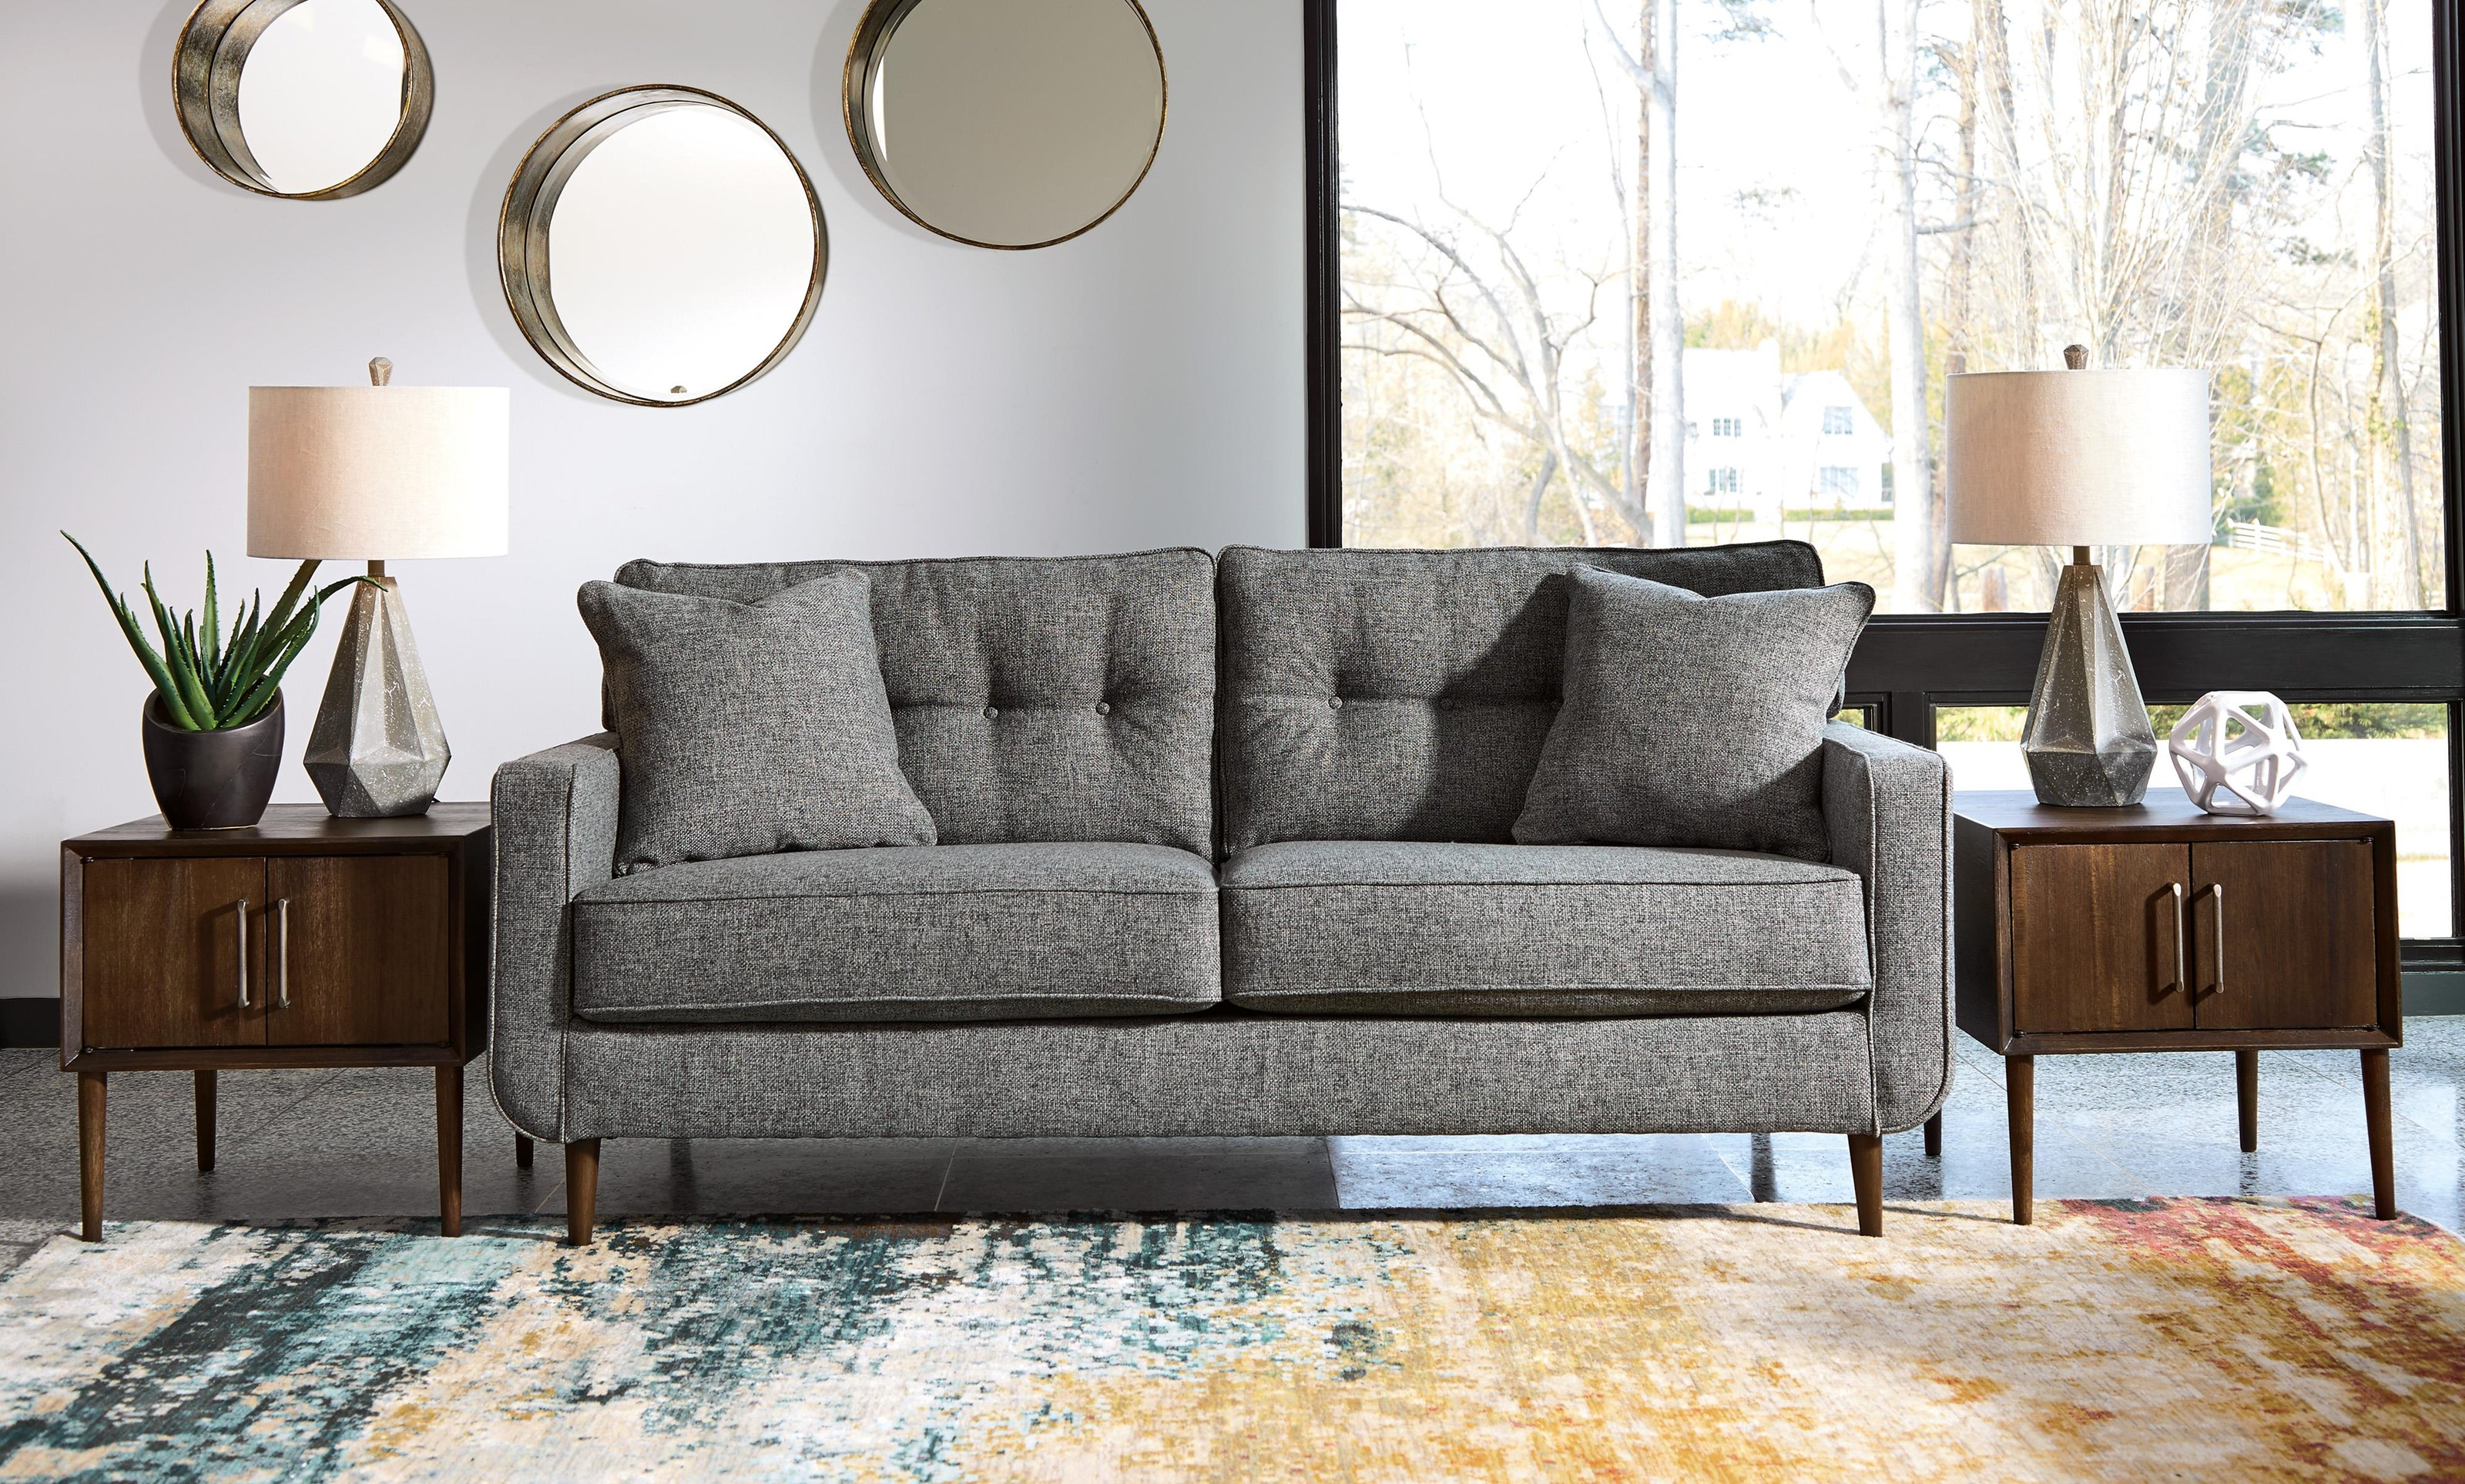 Terrific Zardoni Sofa And Accent Chair Creativecarmelina Interior Chair Design Creativecarmelinacom